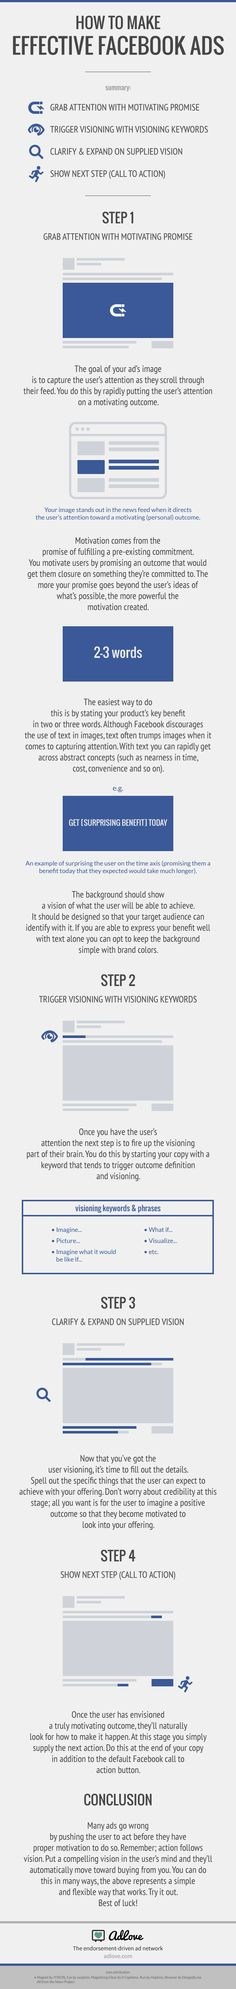 How to Make Effective Facebook Ads #Infographic #Ad #Facebook